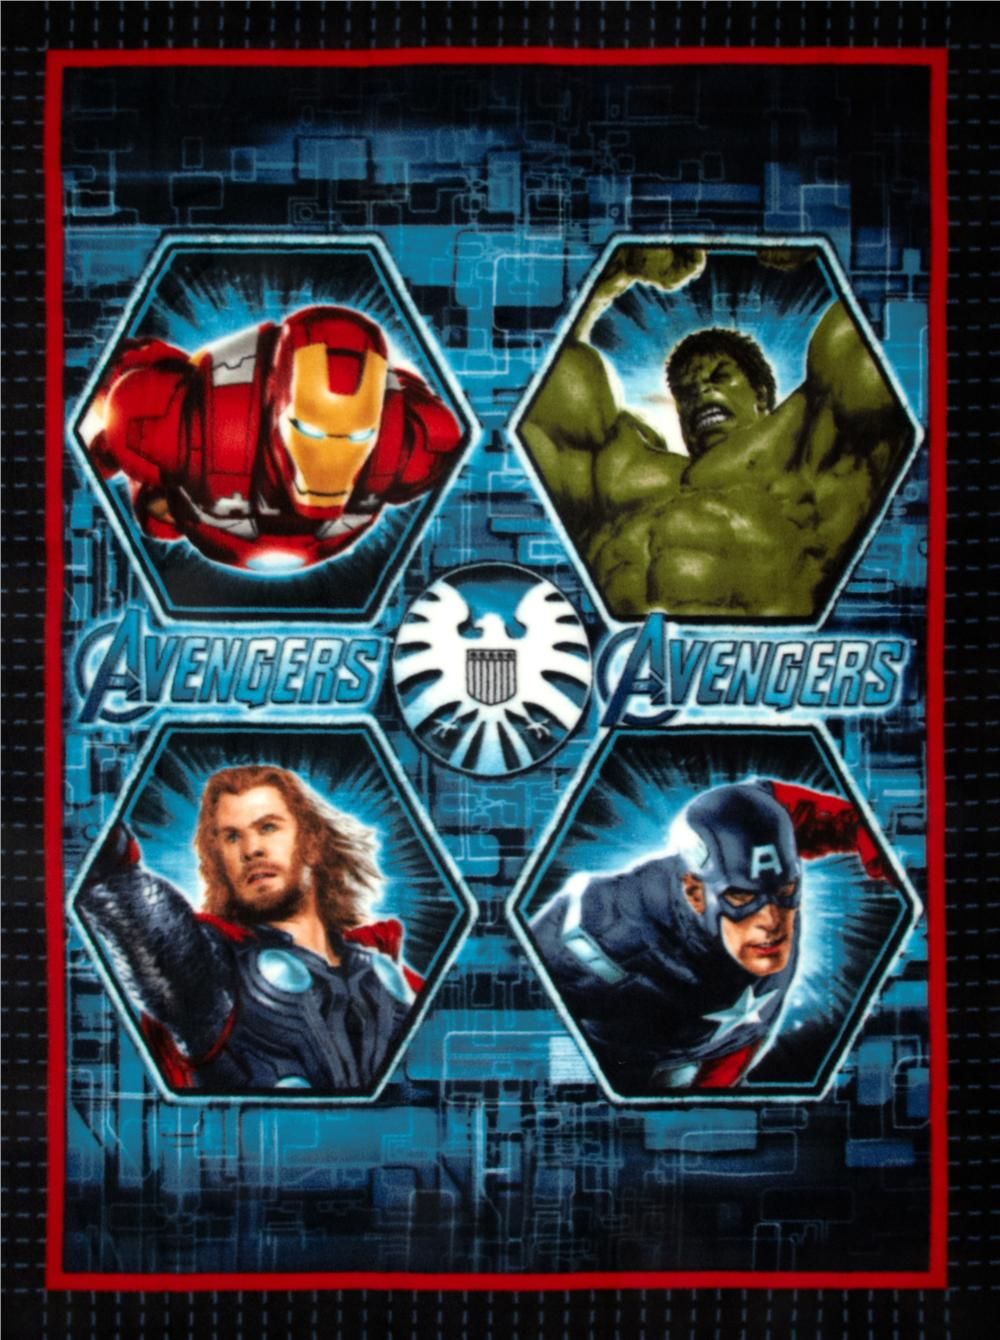 The Avengers No Sew Fleece Throw Kit Portraits Blue